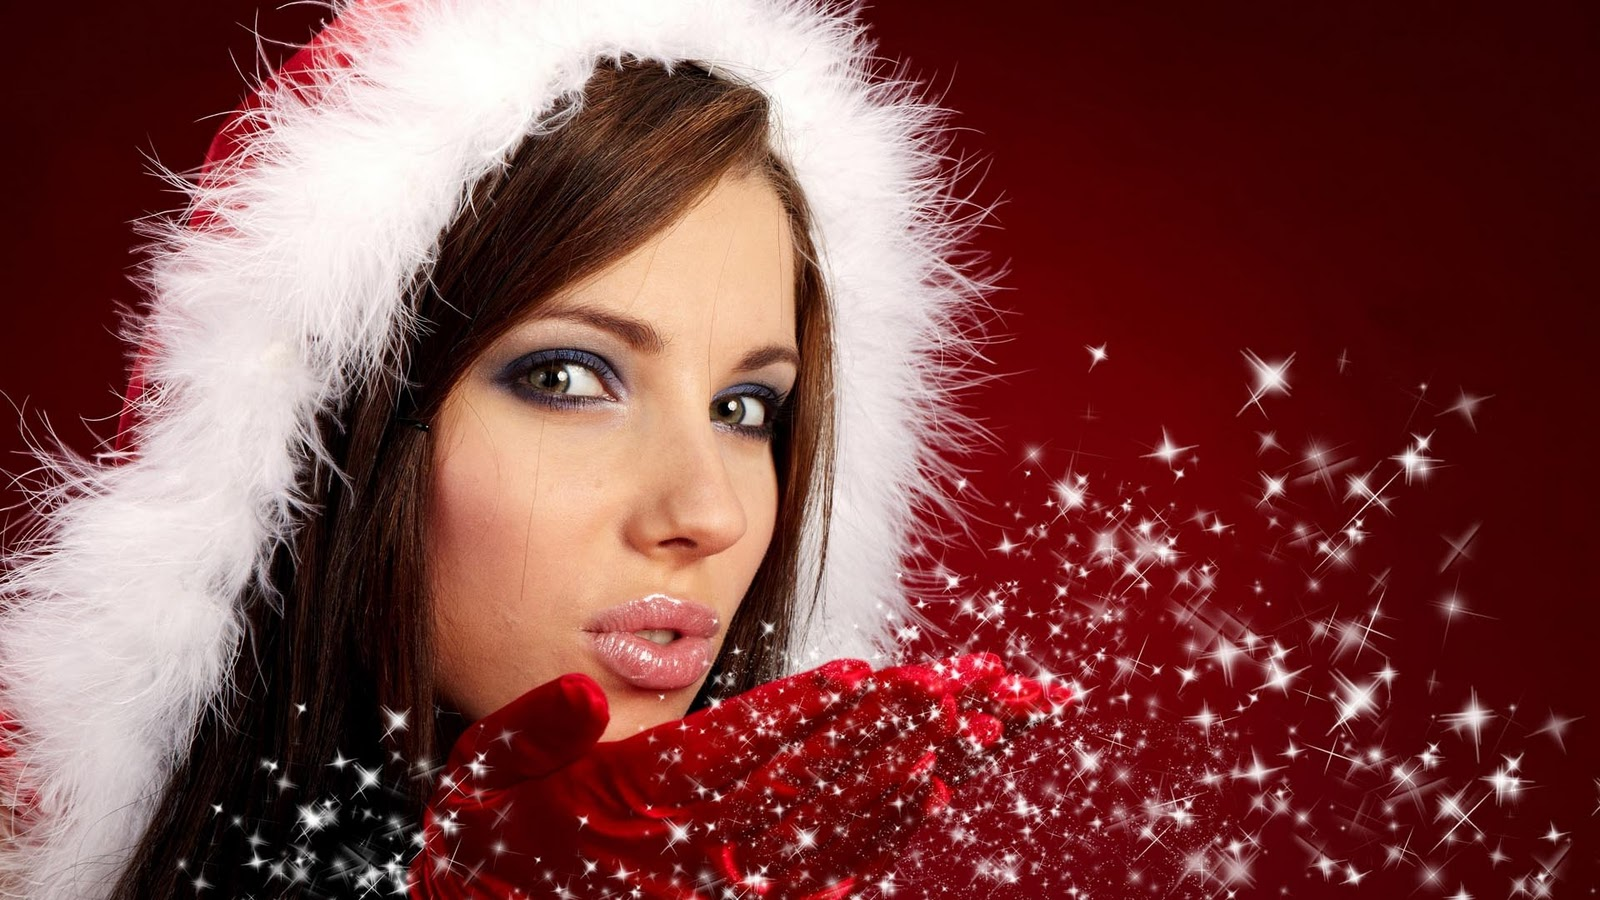 Hot christmas girls hd babes wallpaper free download pixhome for Pretty christmas pics